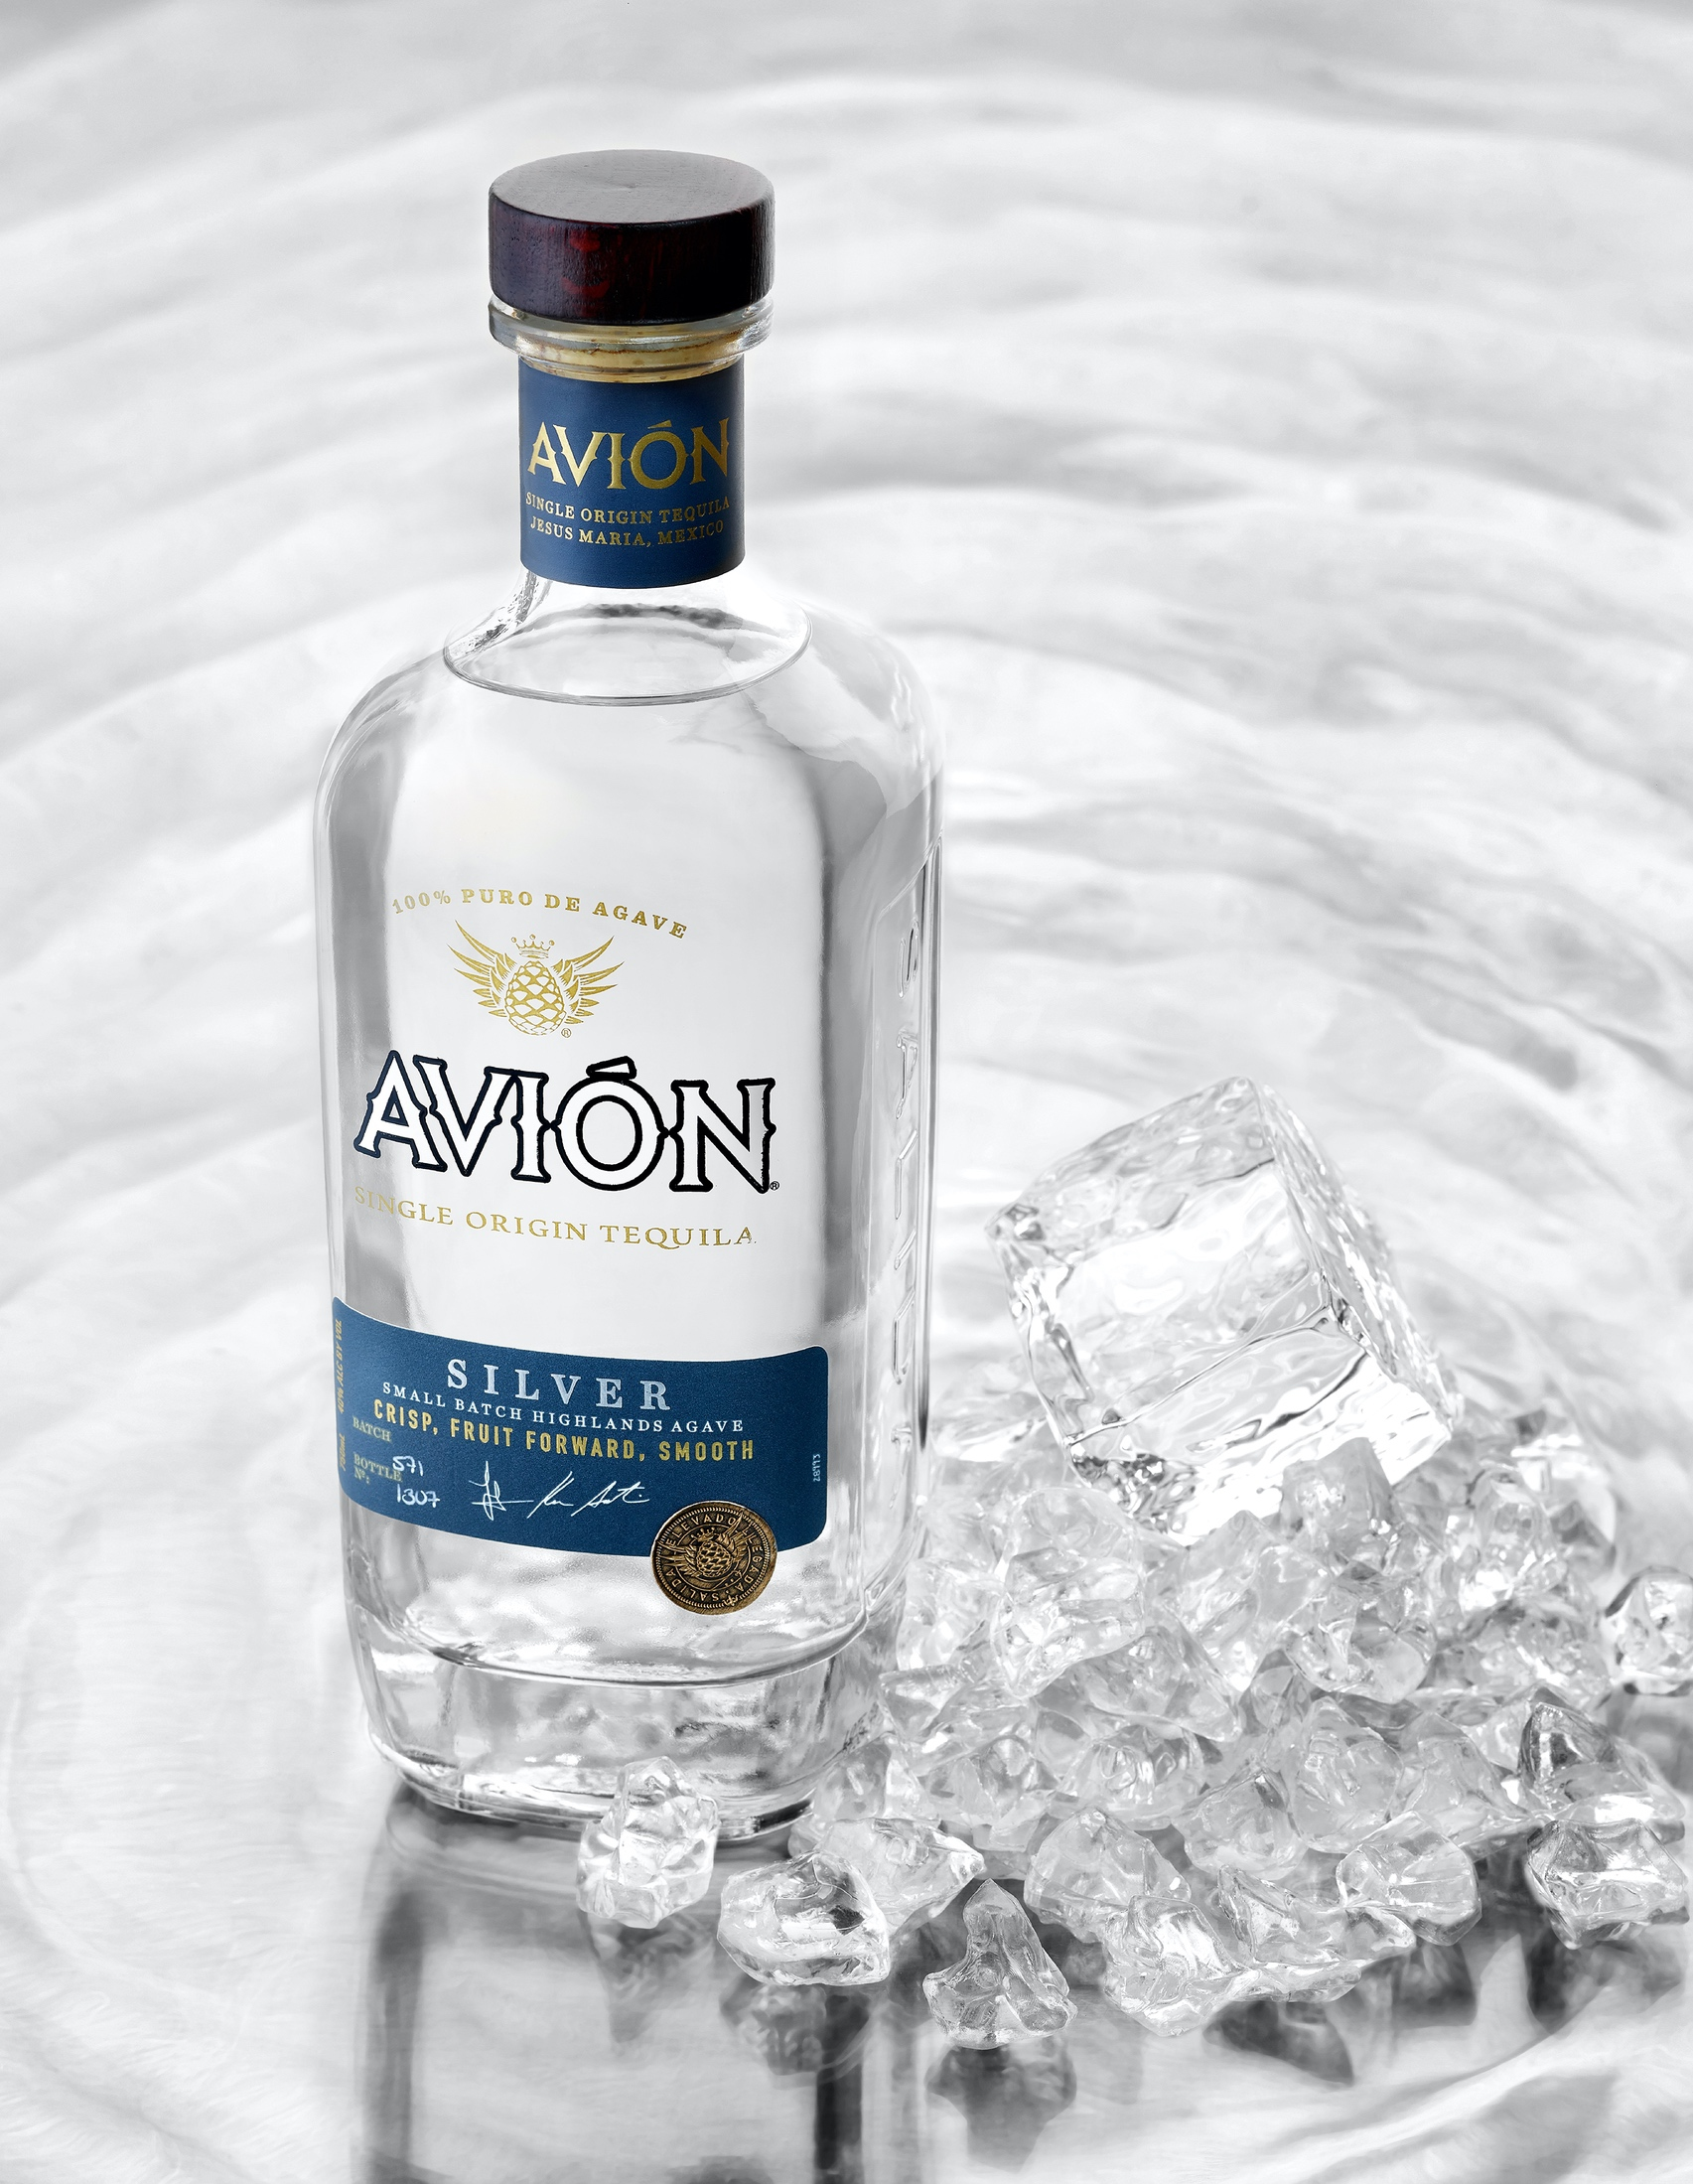 AaronVan_orlando_drink_photography_avion_tequila